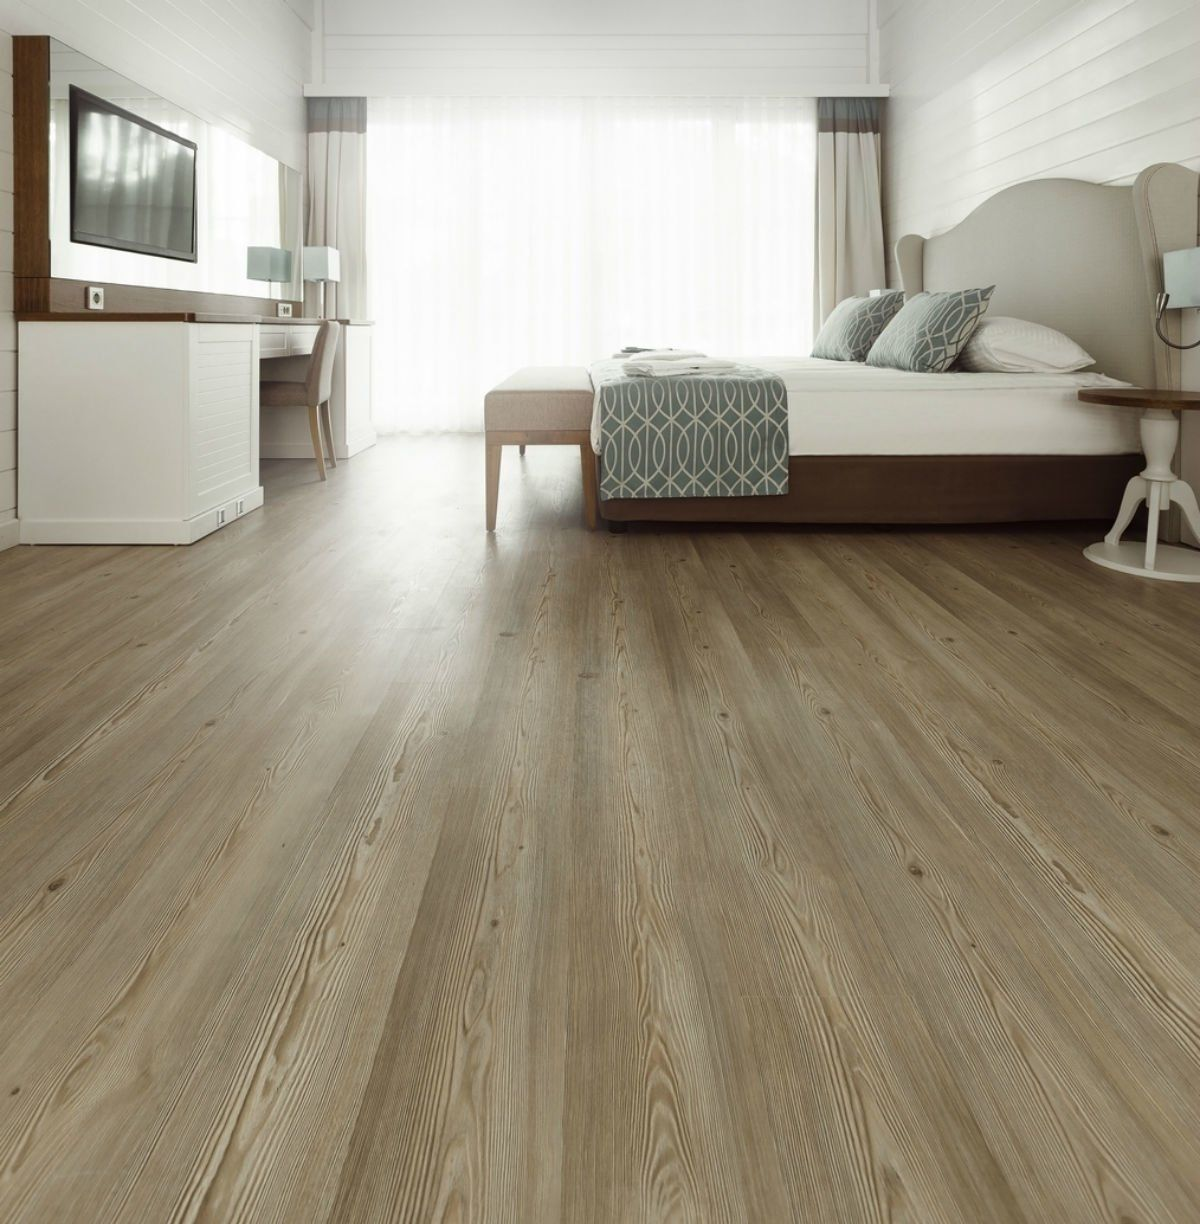 The 7 pros and cons of laminate flooring flooring bob - Pros and cons of hardwood flooring ...